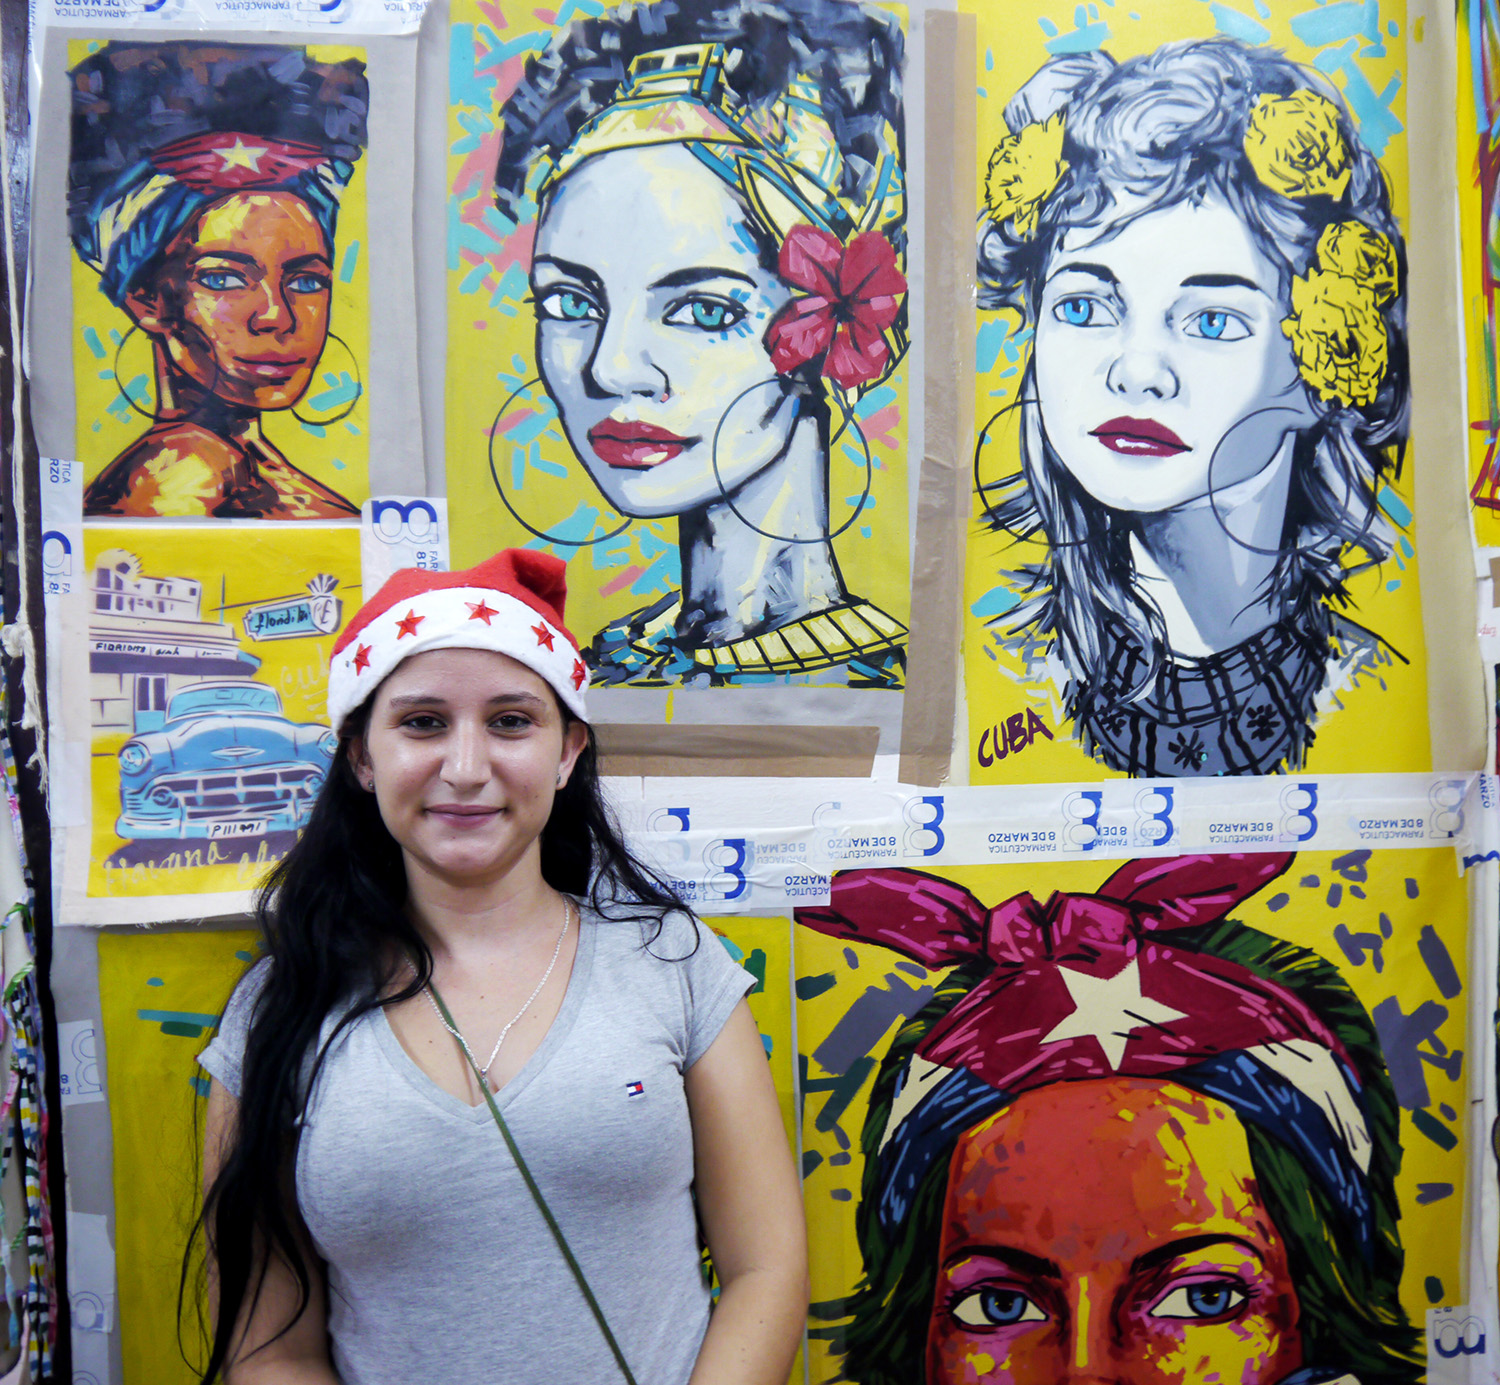 A woman poses in front of artwork.